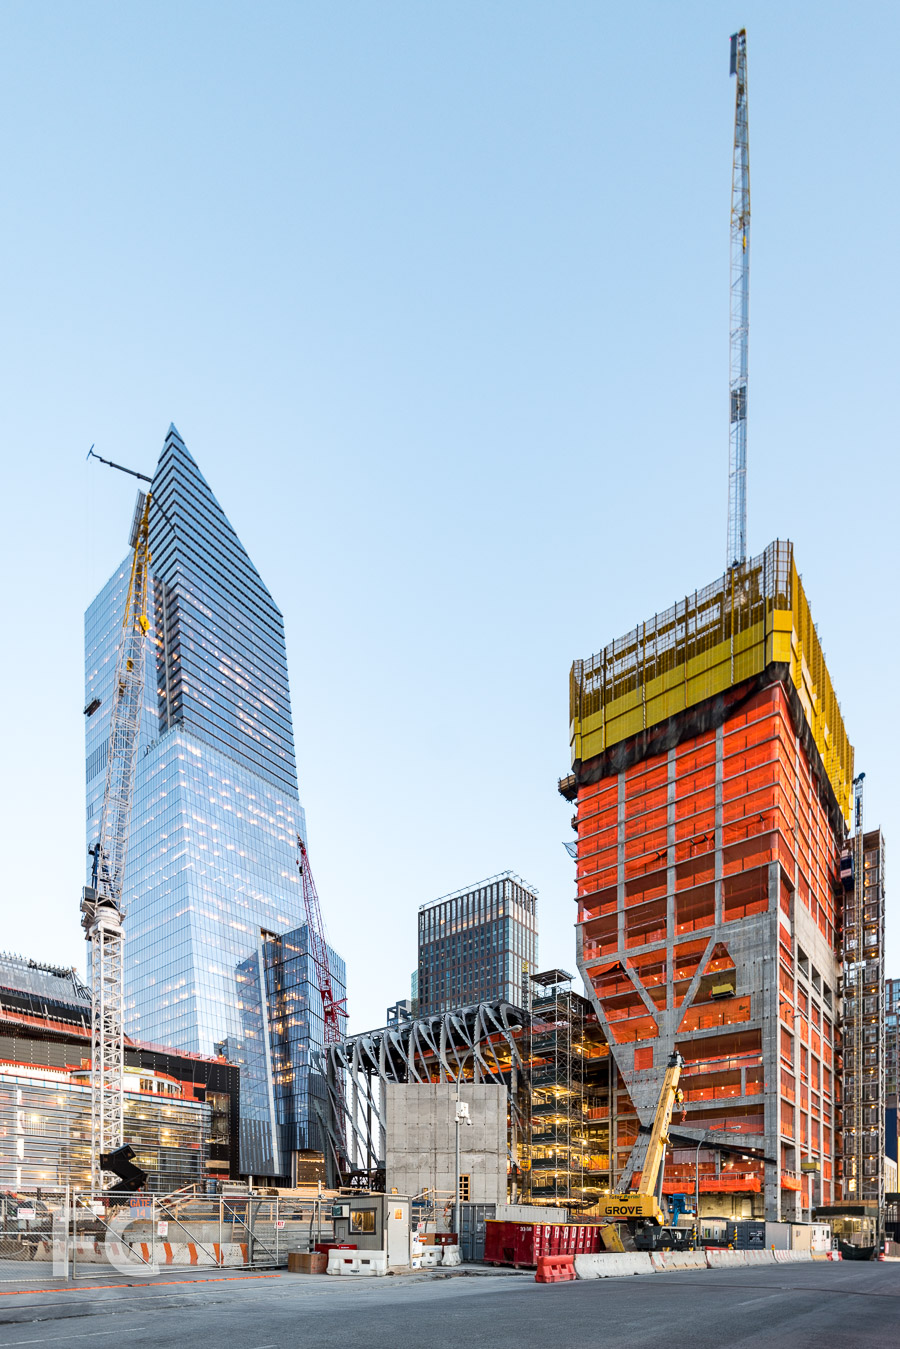 View of 10 Hudson Yards (left), the Shed (center), and 15 Hudson Yards (right) from 11th Avenue.